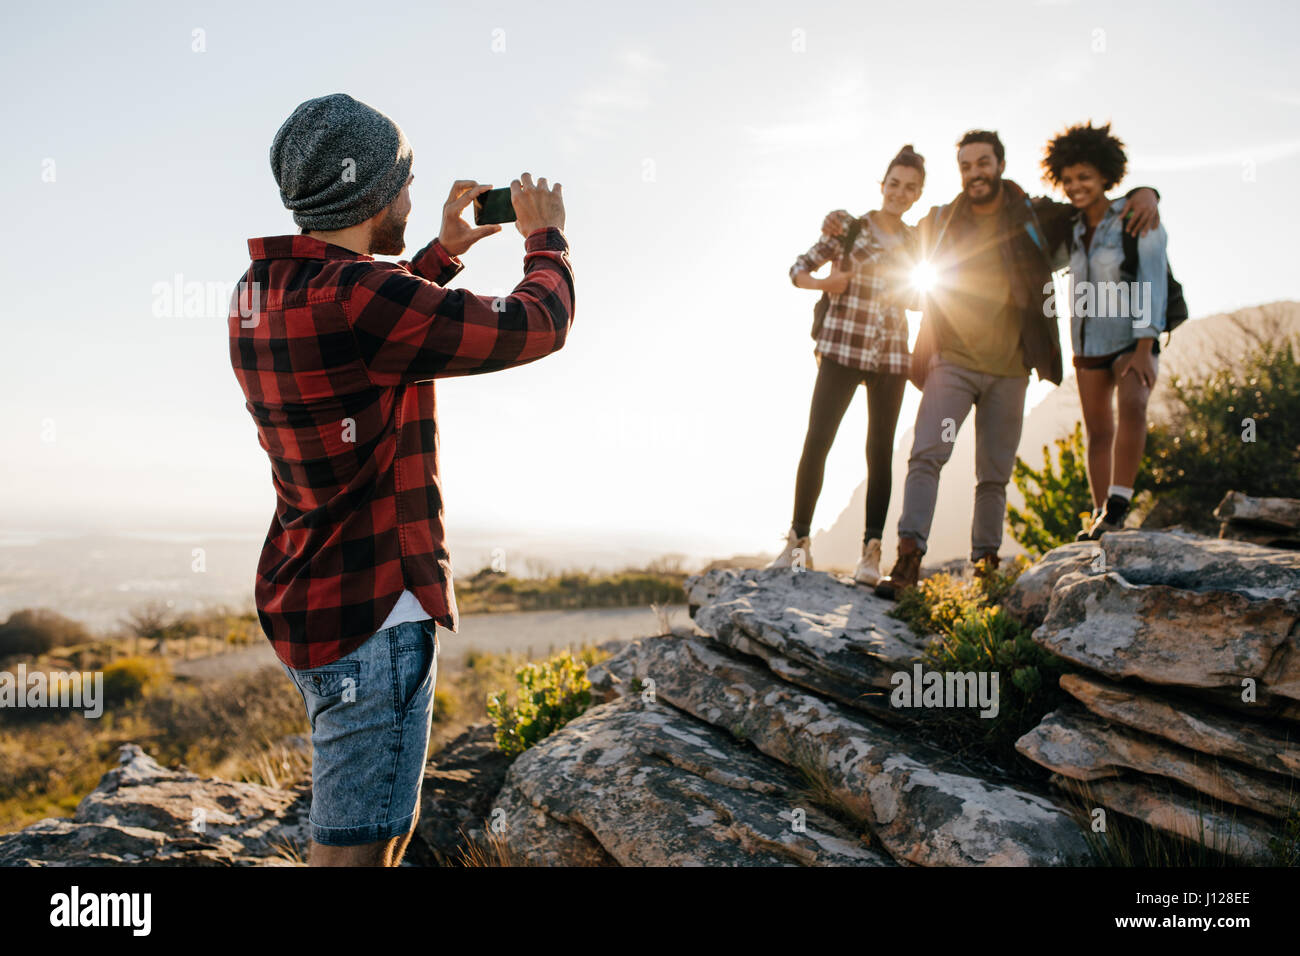 Group of friends standing outdoors taking picture by smartphone. Young people on mountain hike taking photographs. - Stock Image